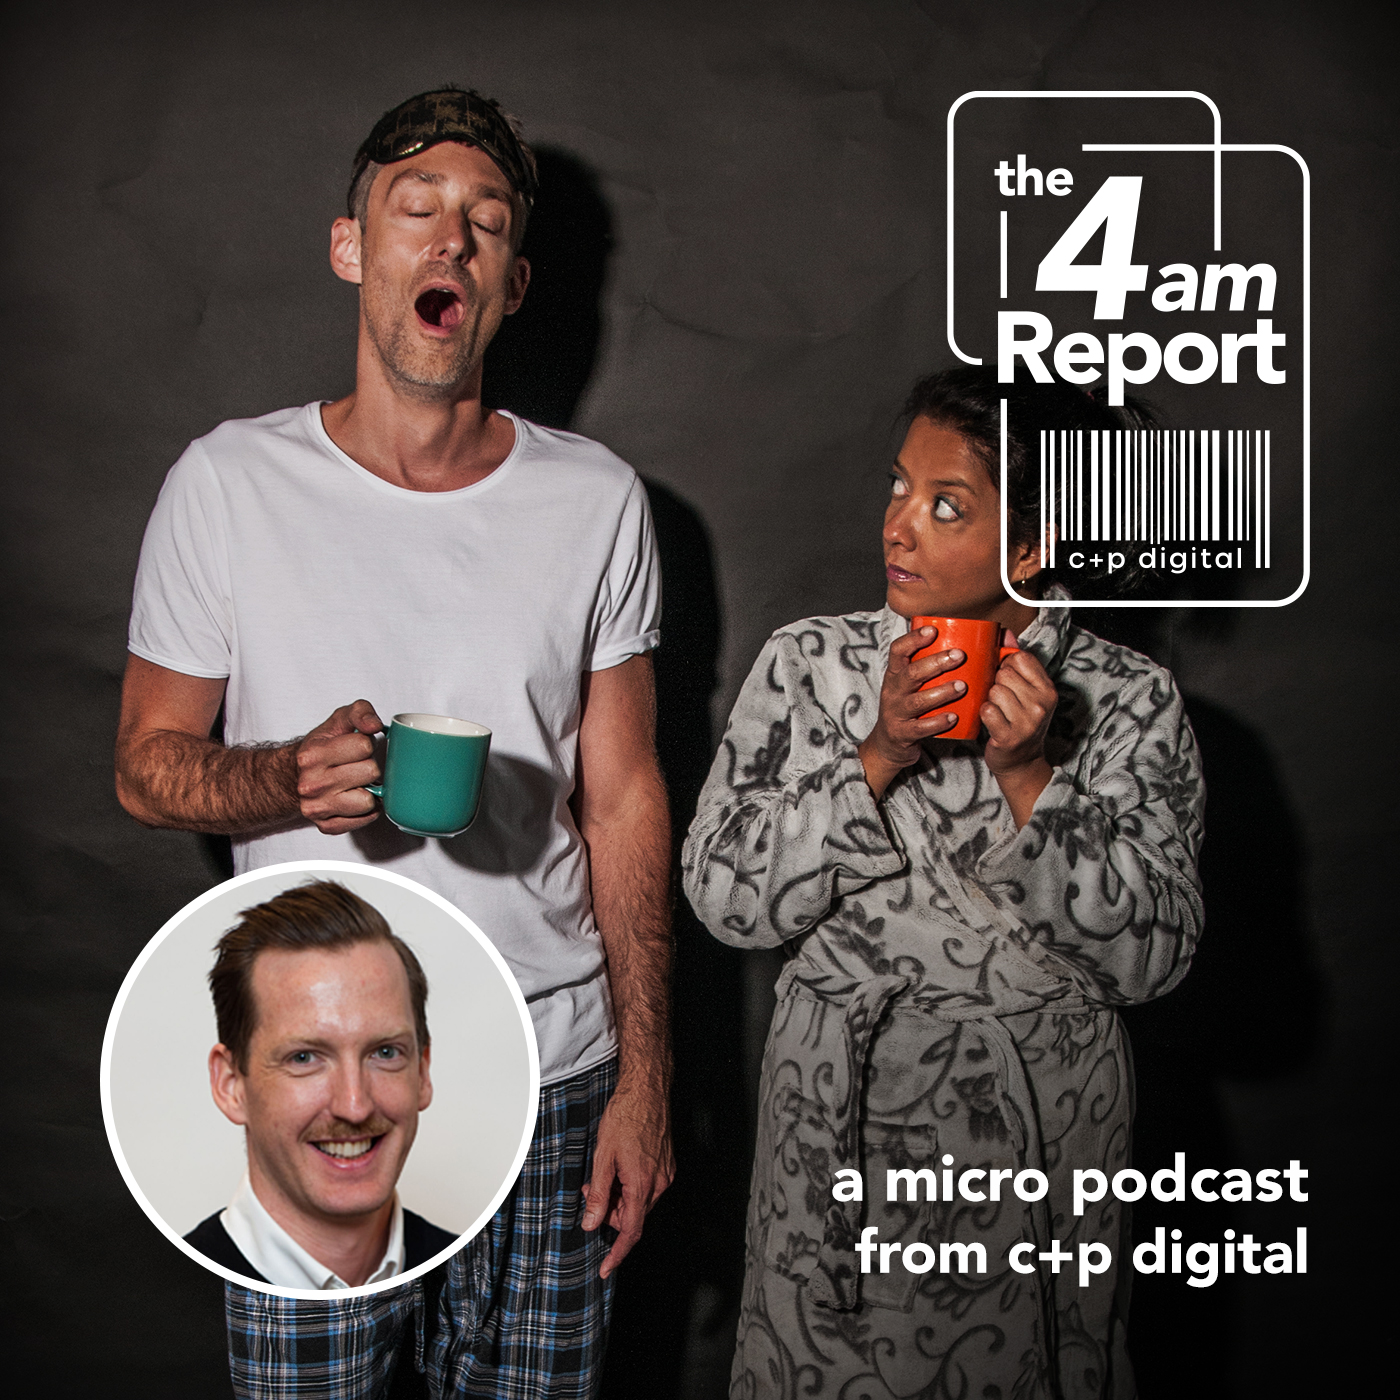 The 4am Report Podcast